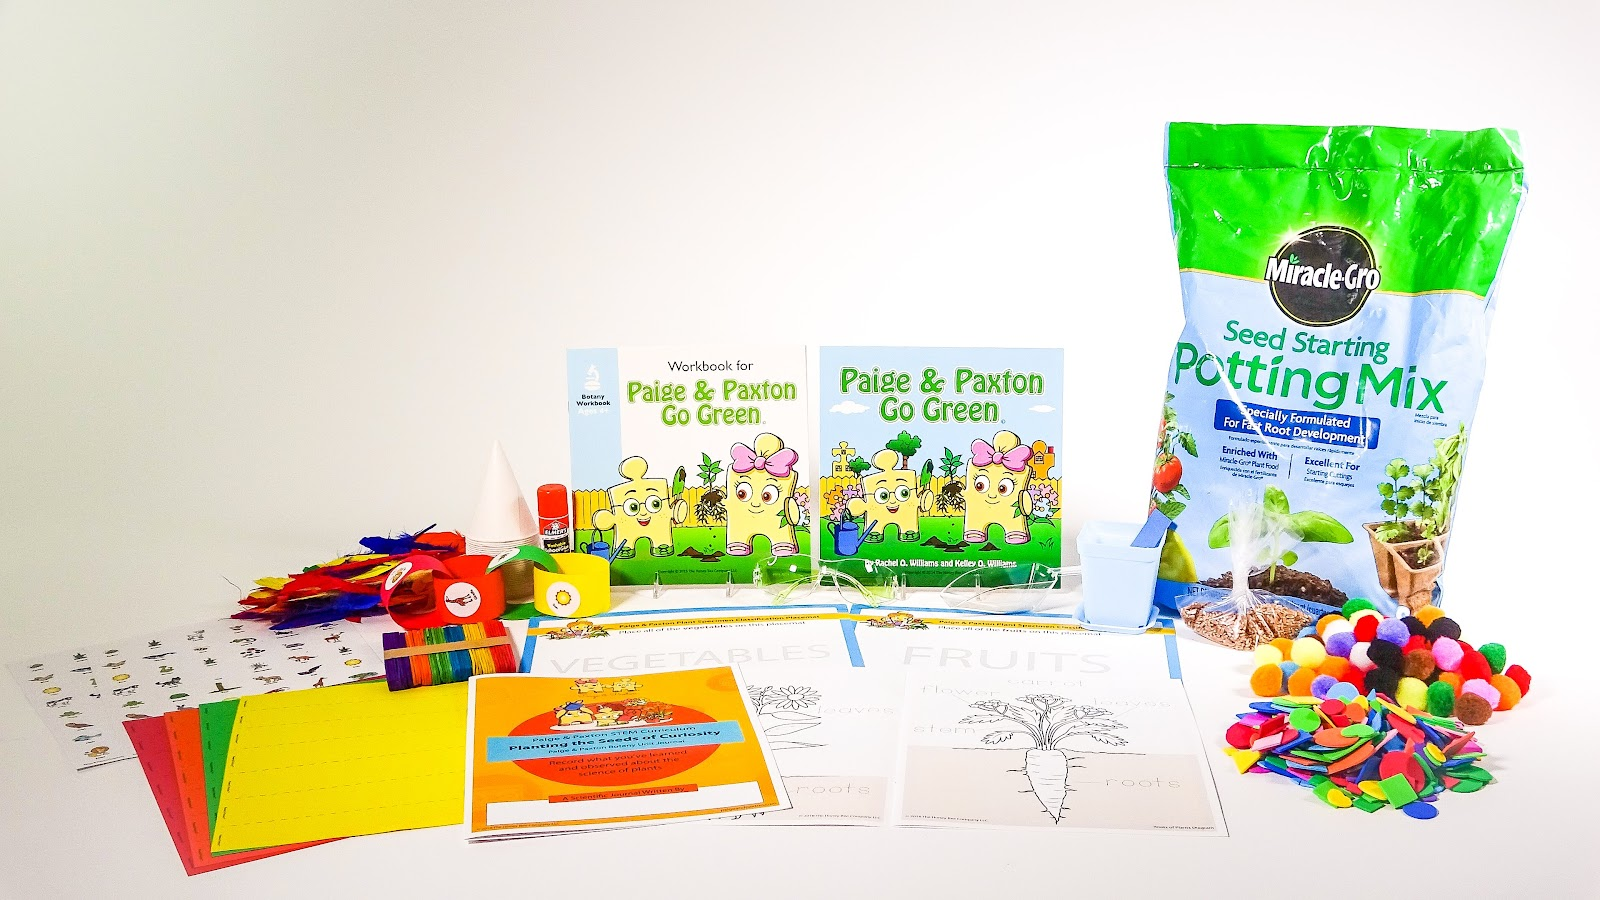 This shows all of the items included in this Botany-focused STEM kit for elementary students, including fertilized potting soil, STEM stories, diorama materials and labeled diagrams of plant parts.